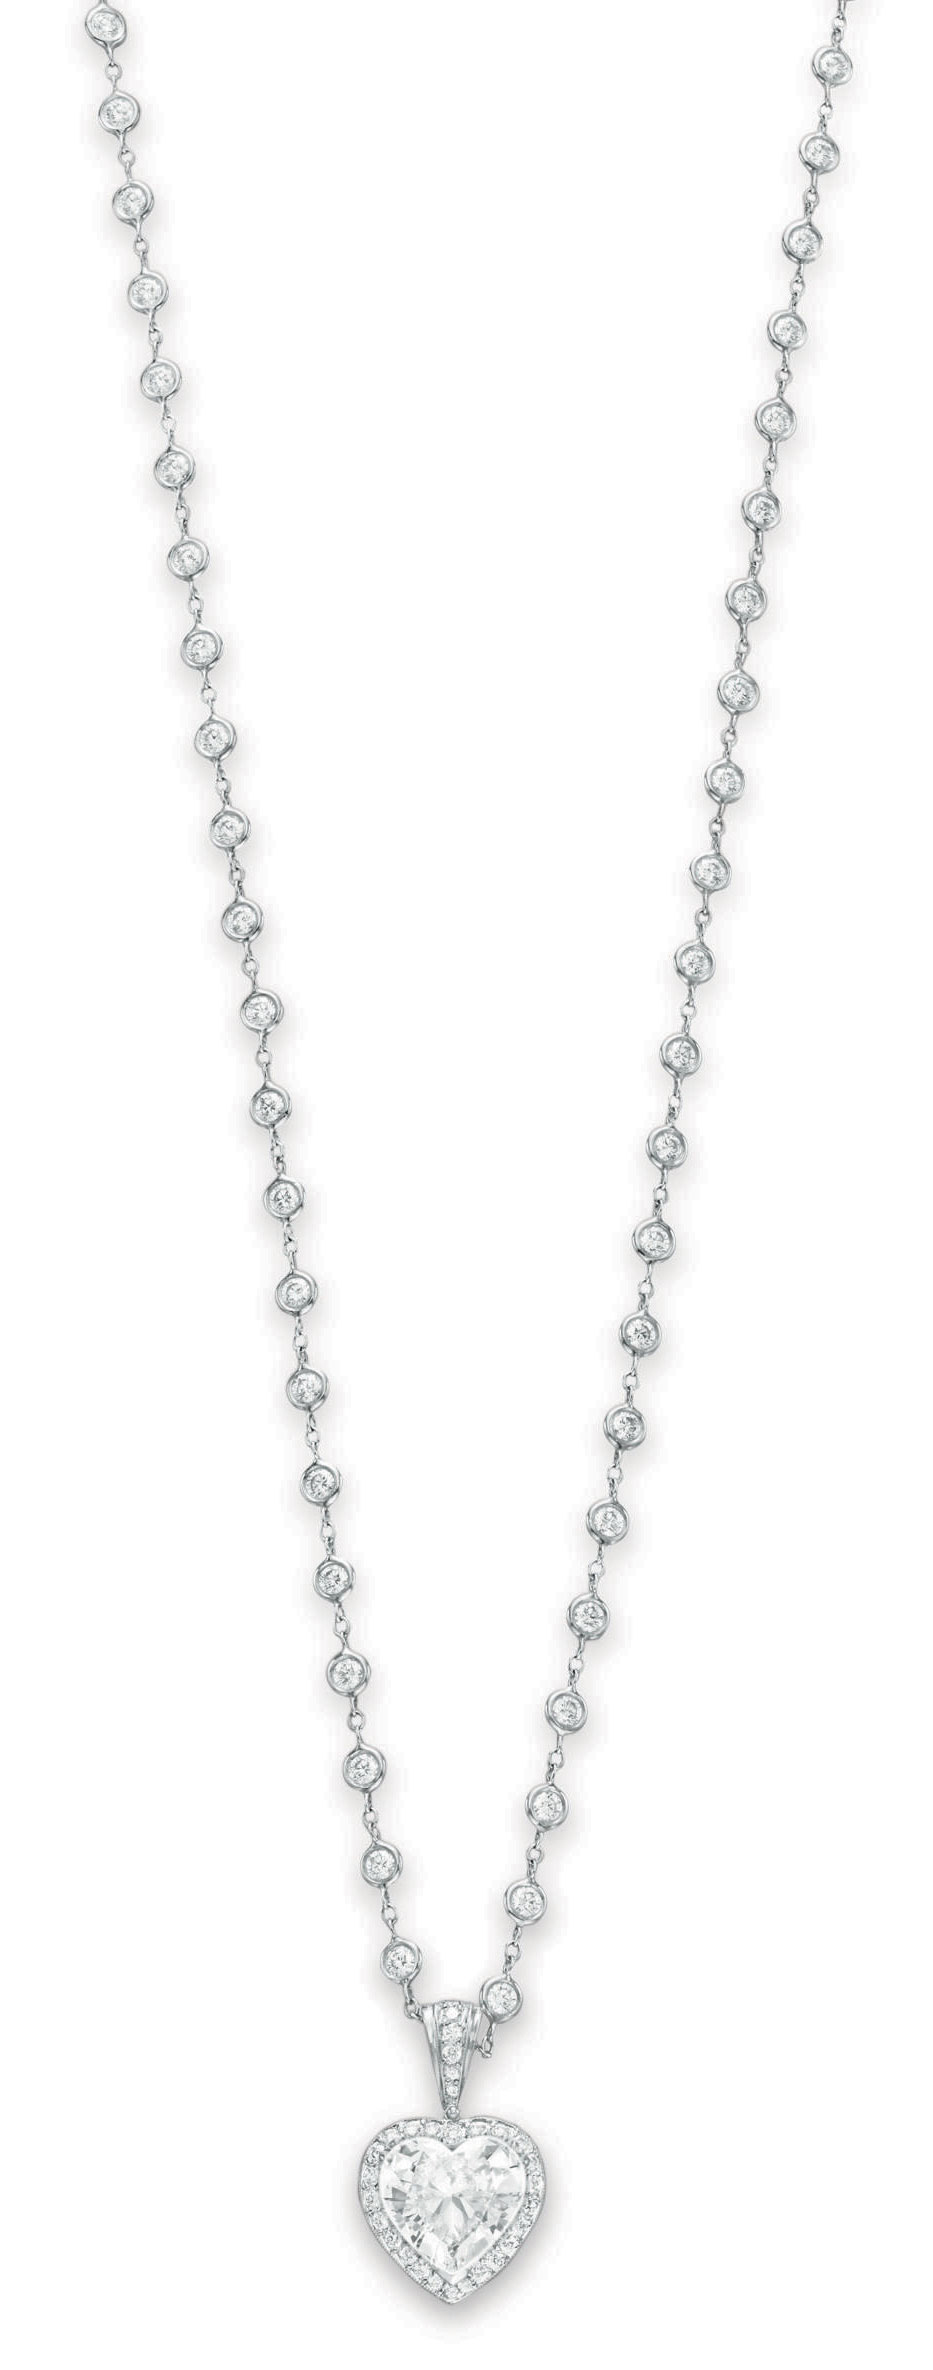 A DIAMOND PENDANT NECKLACE, BY MICHAEL BEAUDRY